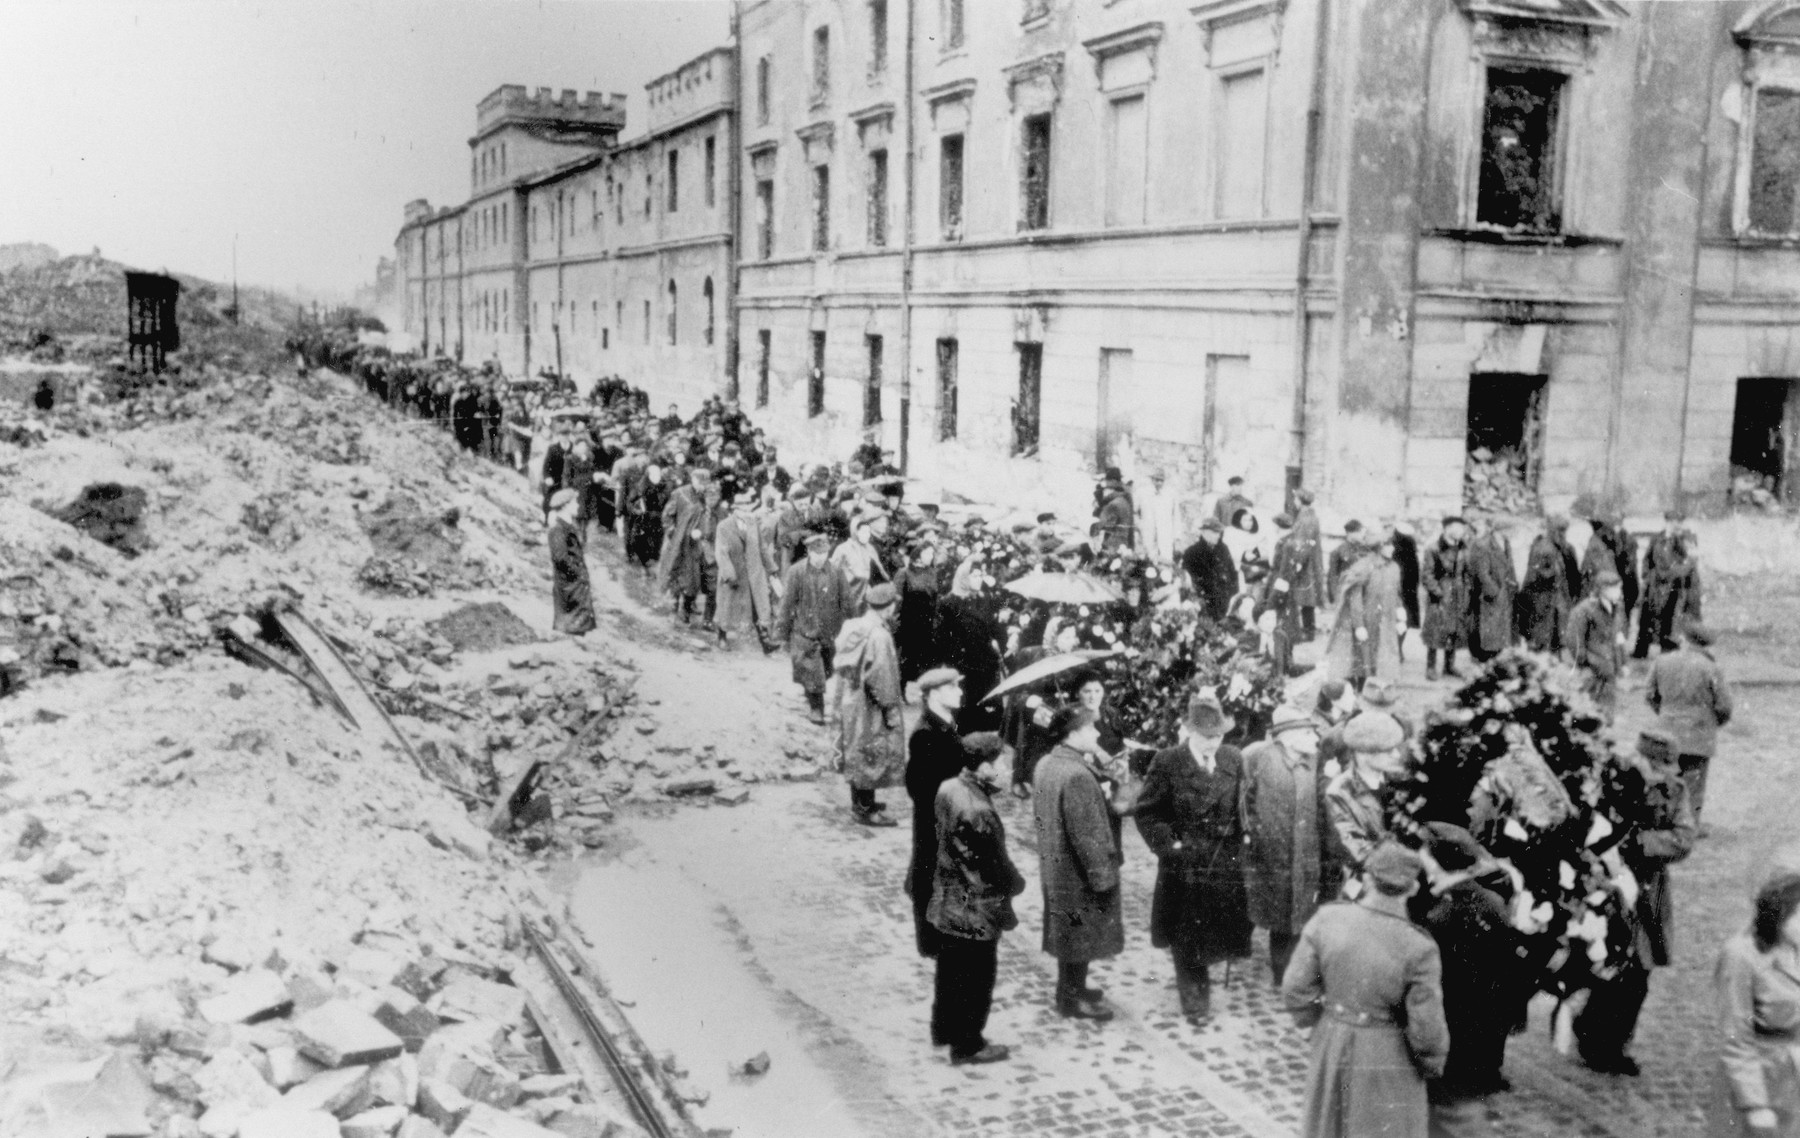 Jewish survivors carrying flags march through the ruins of the Warsaw ghetto [probably during a demonstration marking the fourth anniversary of the Warsaw ghetto uprising].